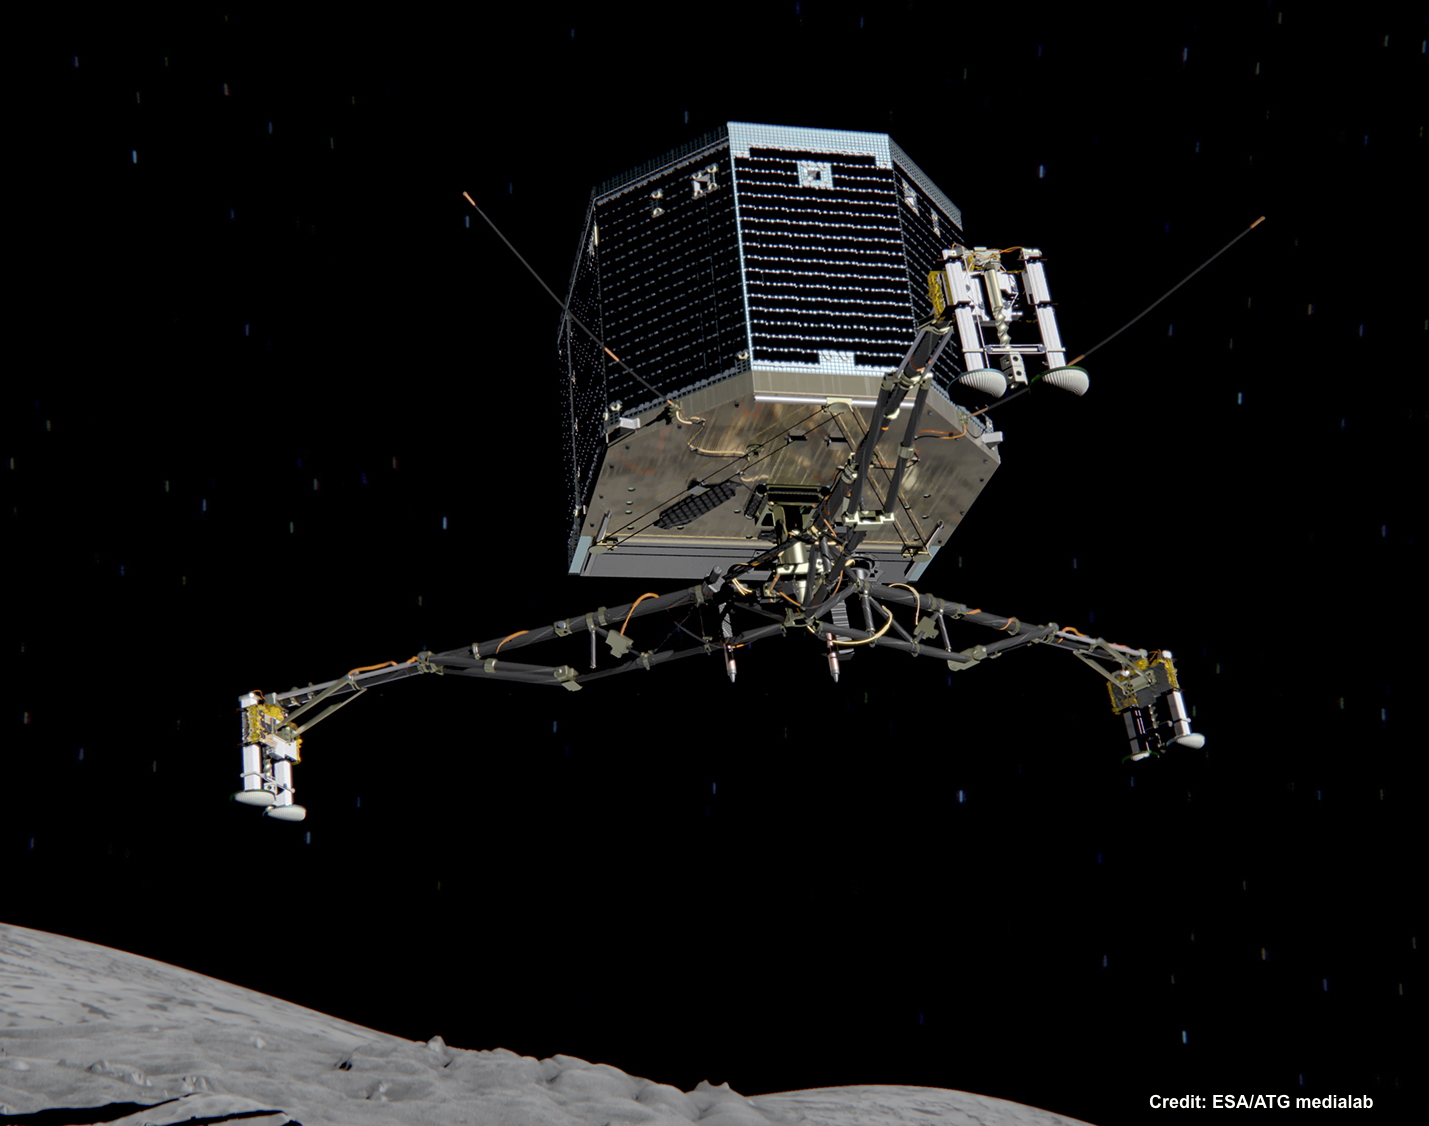 Philae has been dormant for 7 months, but was heard from 5 days ago. Now, it has been heard from again on Friday.